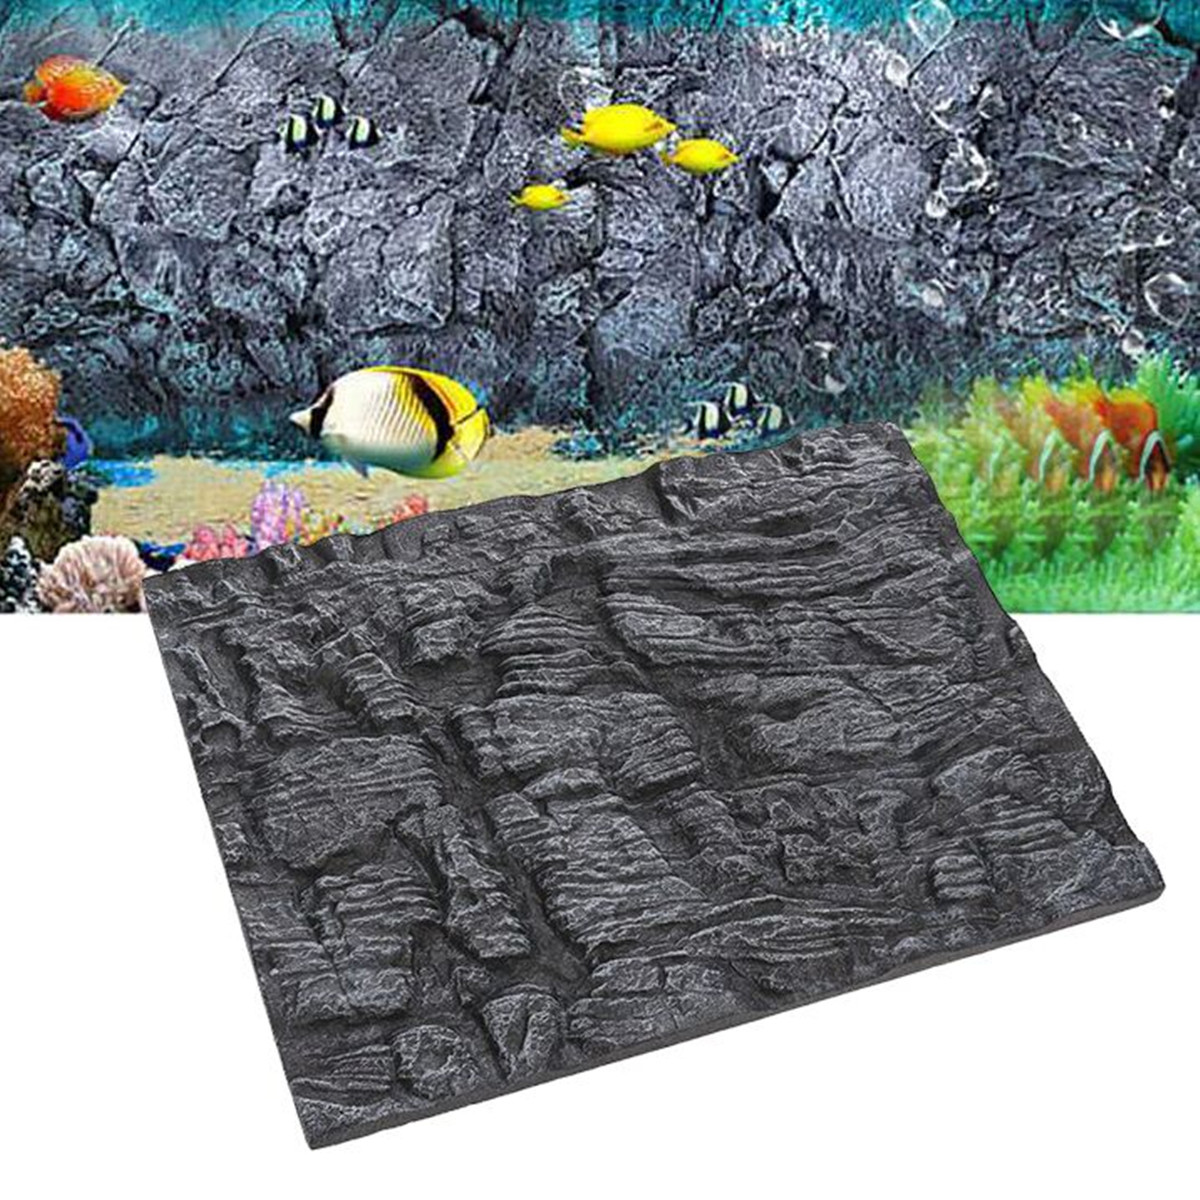 Meigar 1 2Pcs 3D Foam Rock Aquarium Background Fish Tank Reptile Reptile Marine 23''x18'' by